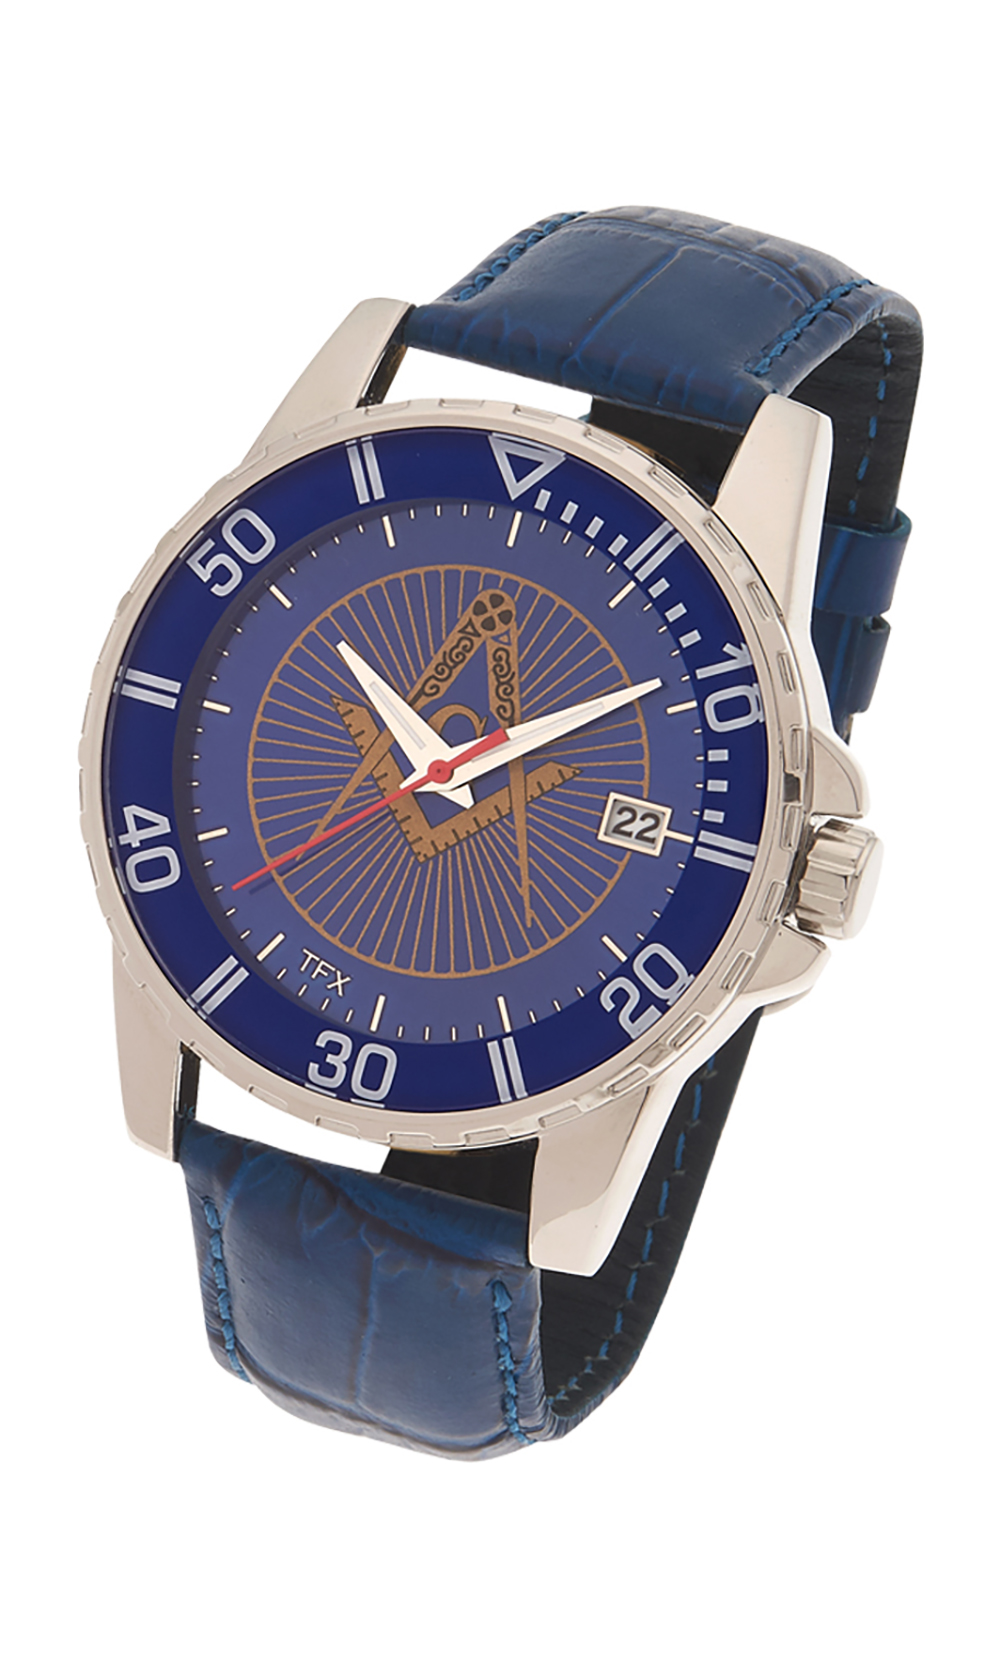 Masonic Square & Compasses TFX Watch - Blue Leather Band